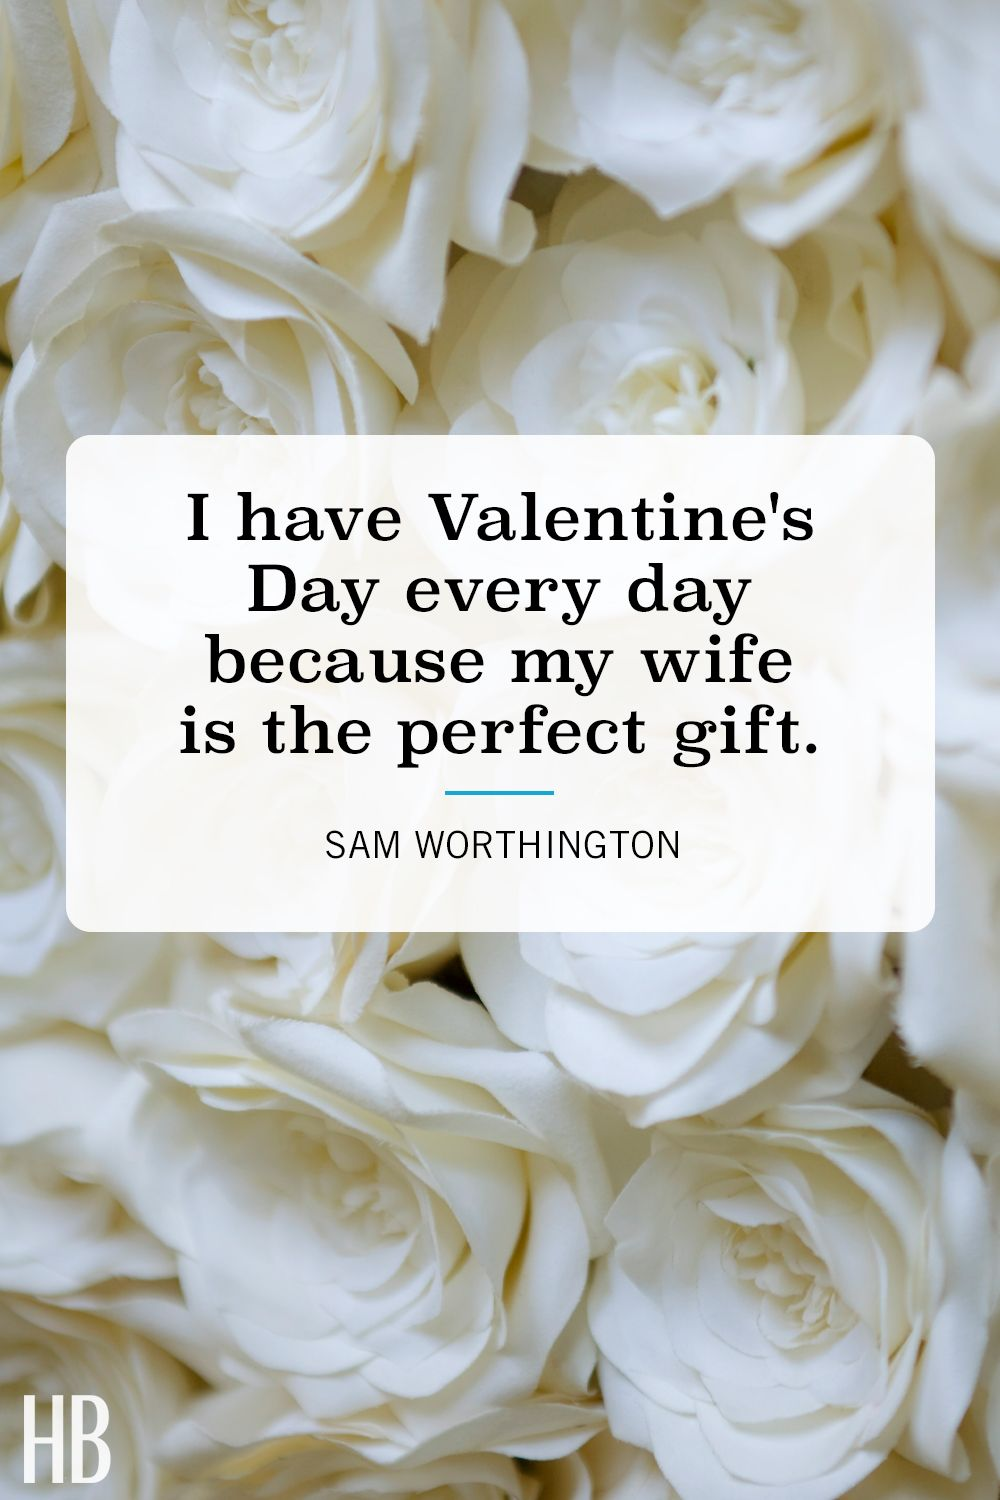 A Perfect Getaway Quotes Classy 20 cute valentine's day quotes - romantic quotes about love